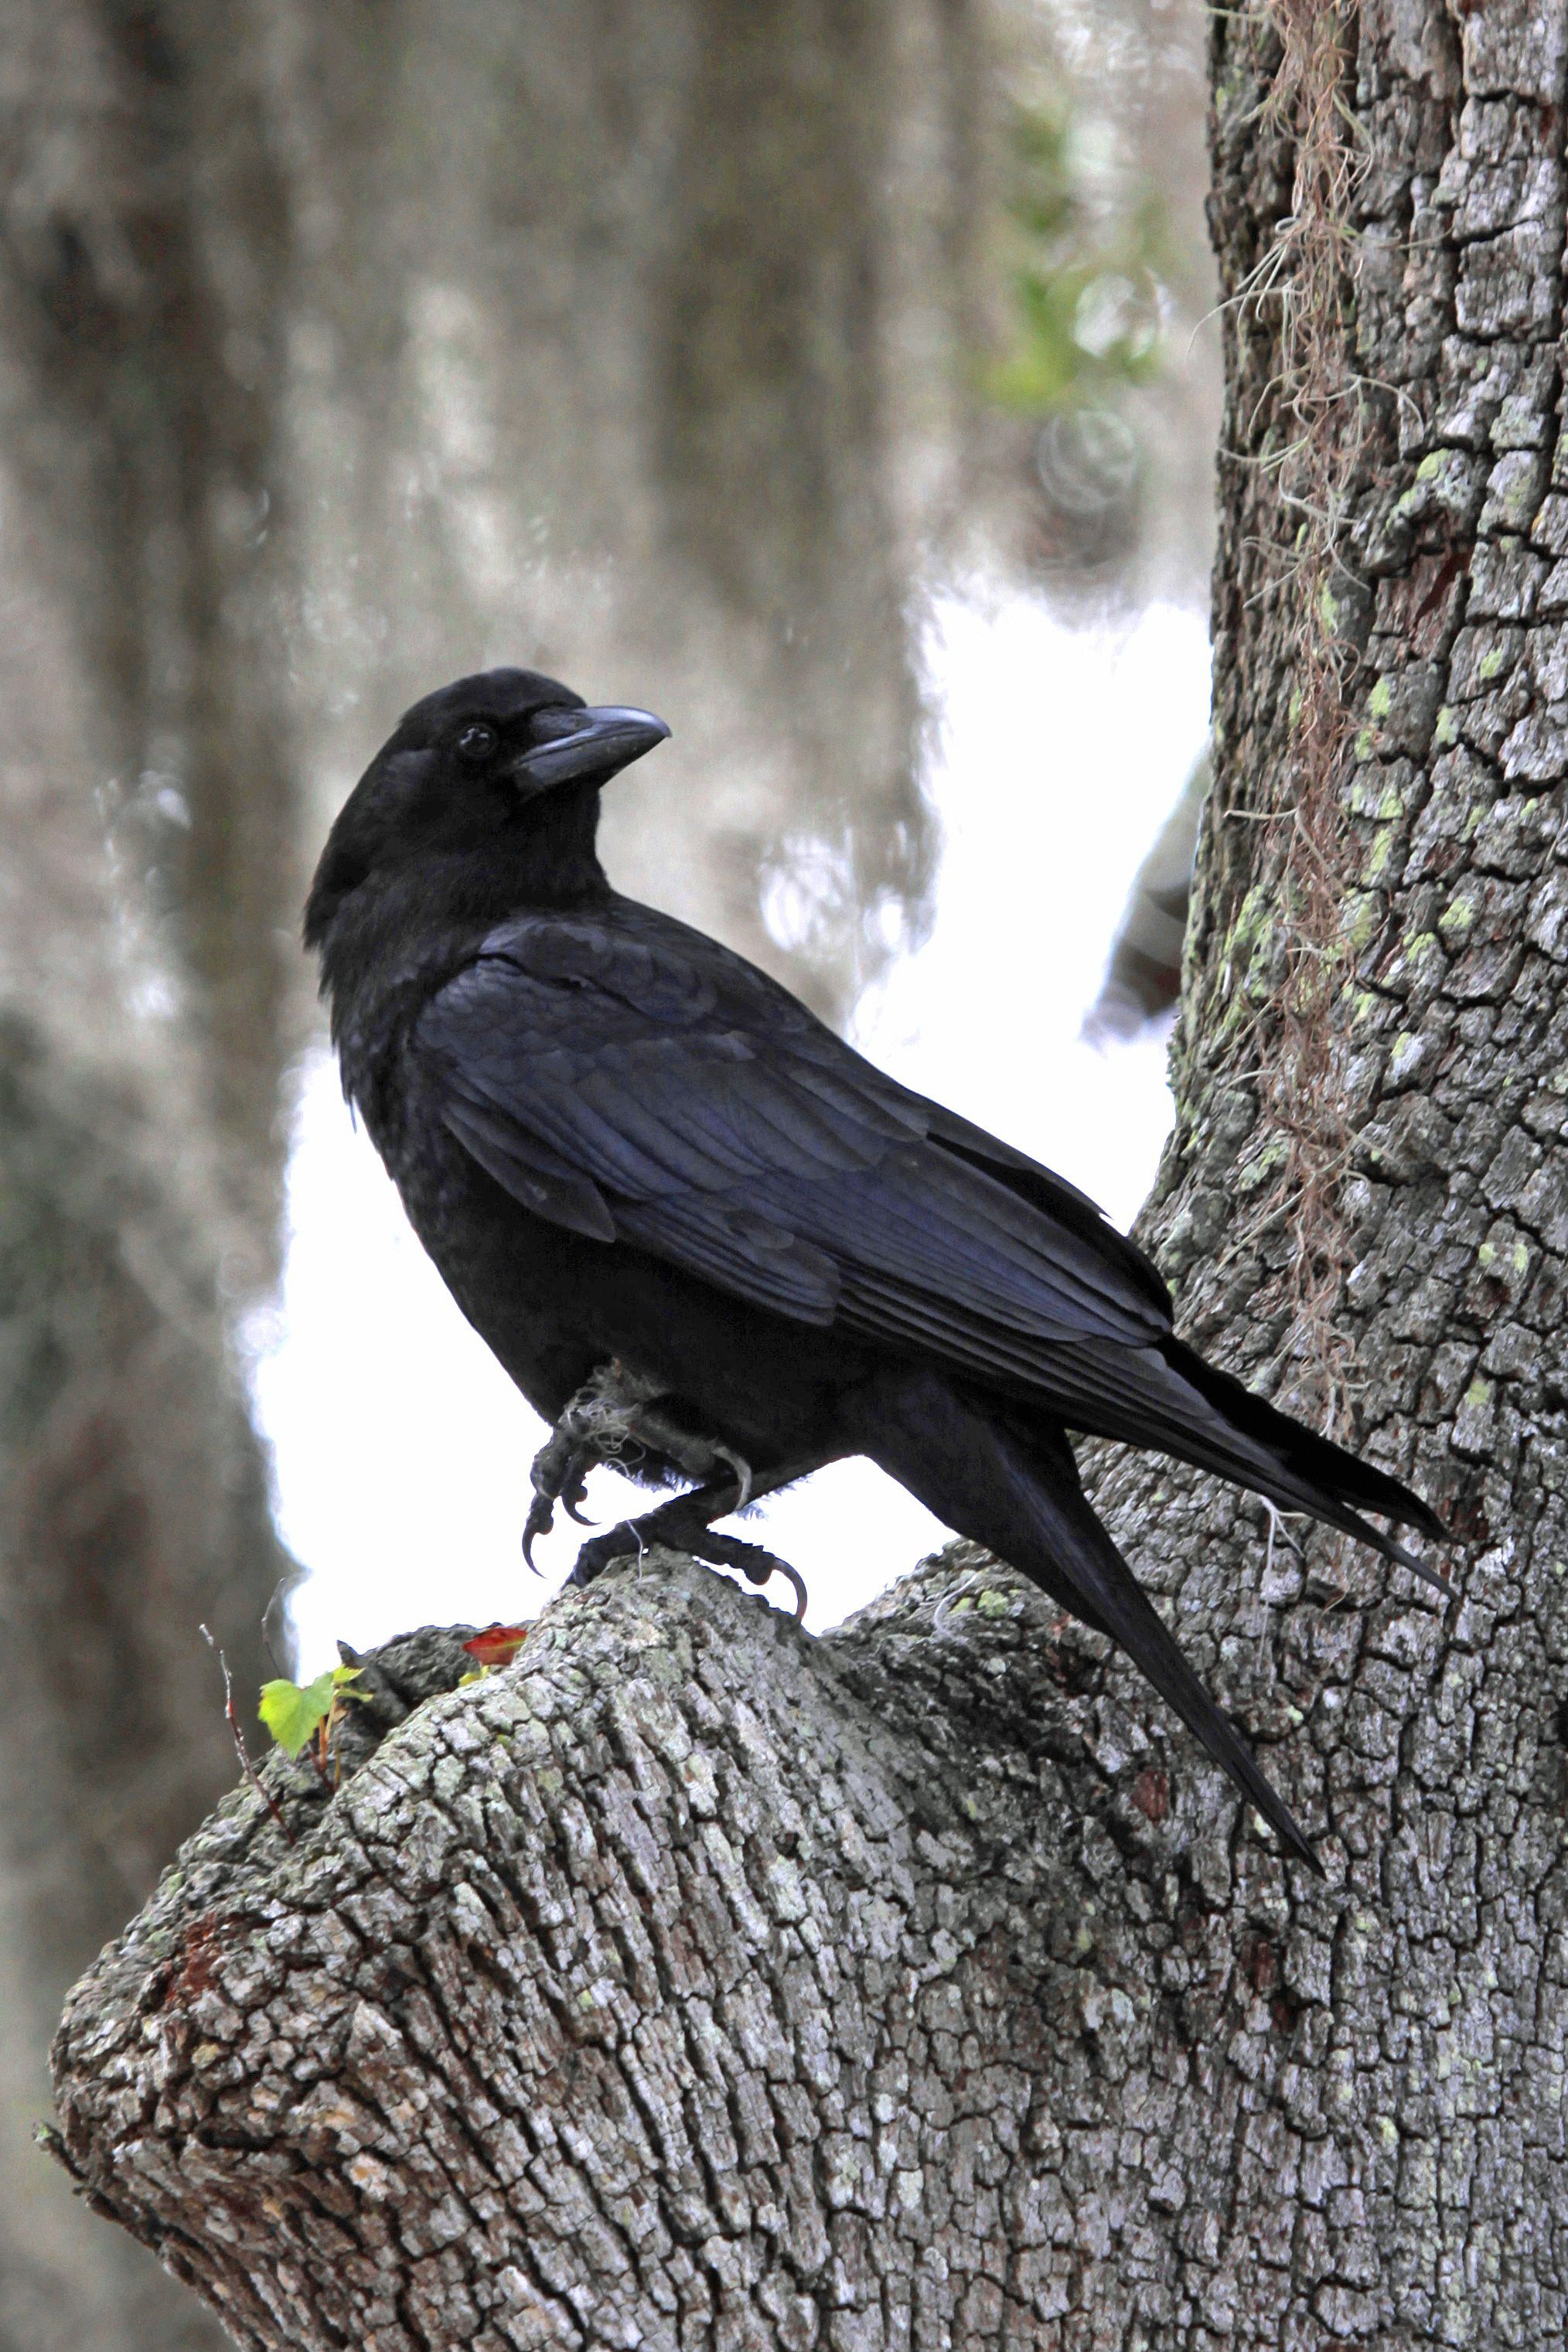 The American Crow was the 7th most spotted bird in the Atlantic